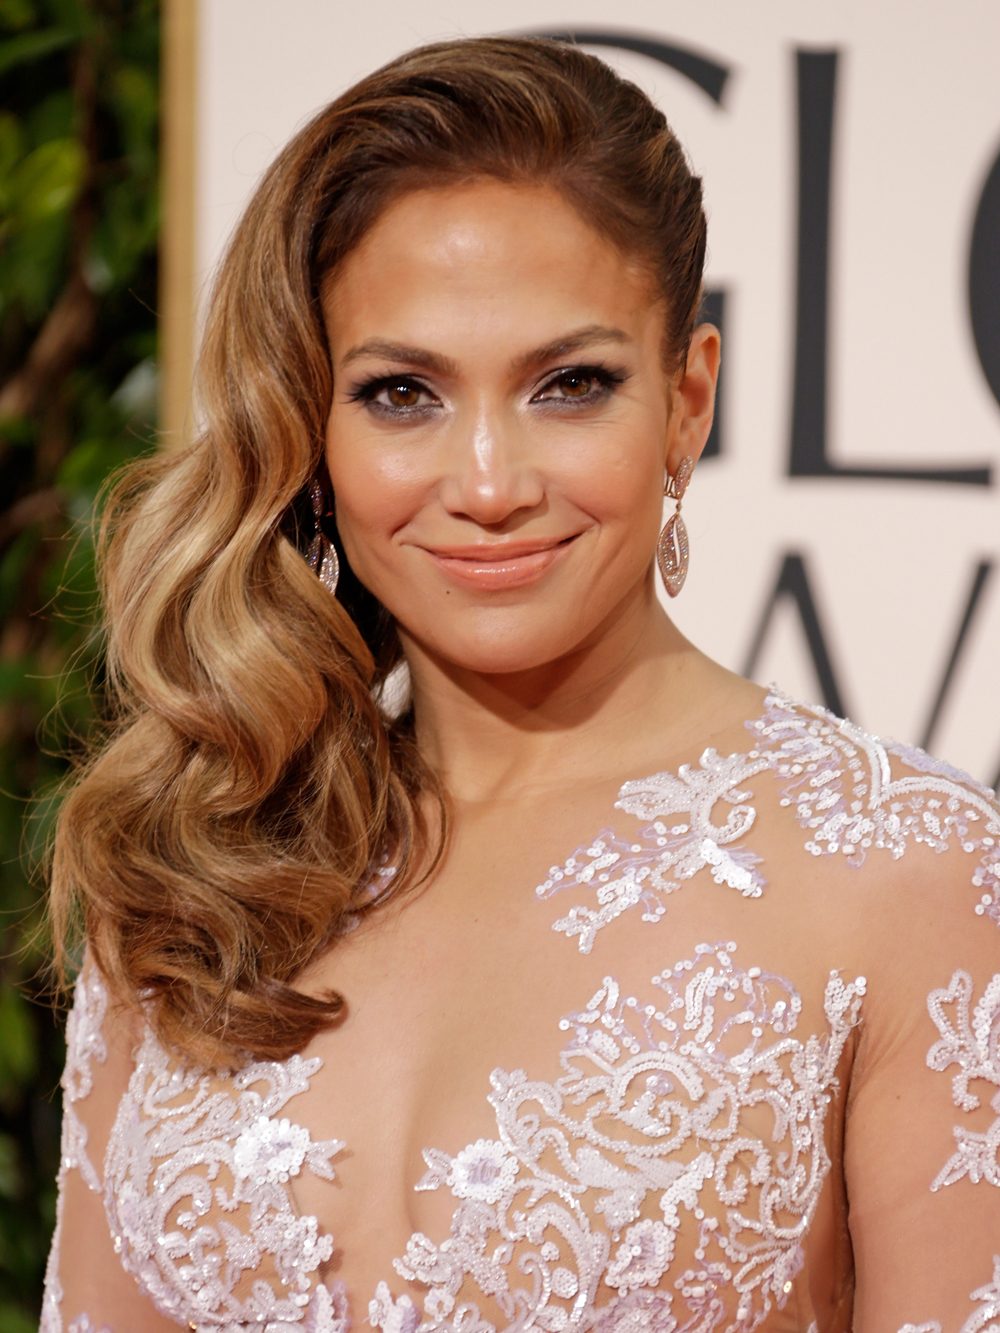 jennifer lopez hair styles s most glamorous hairstyles instyle 2133 | 110117 jennifer lopez hair embed 12